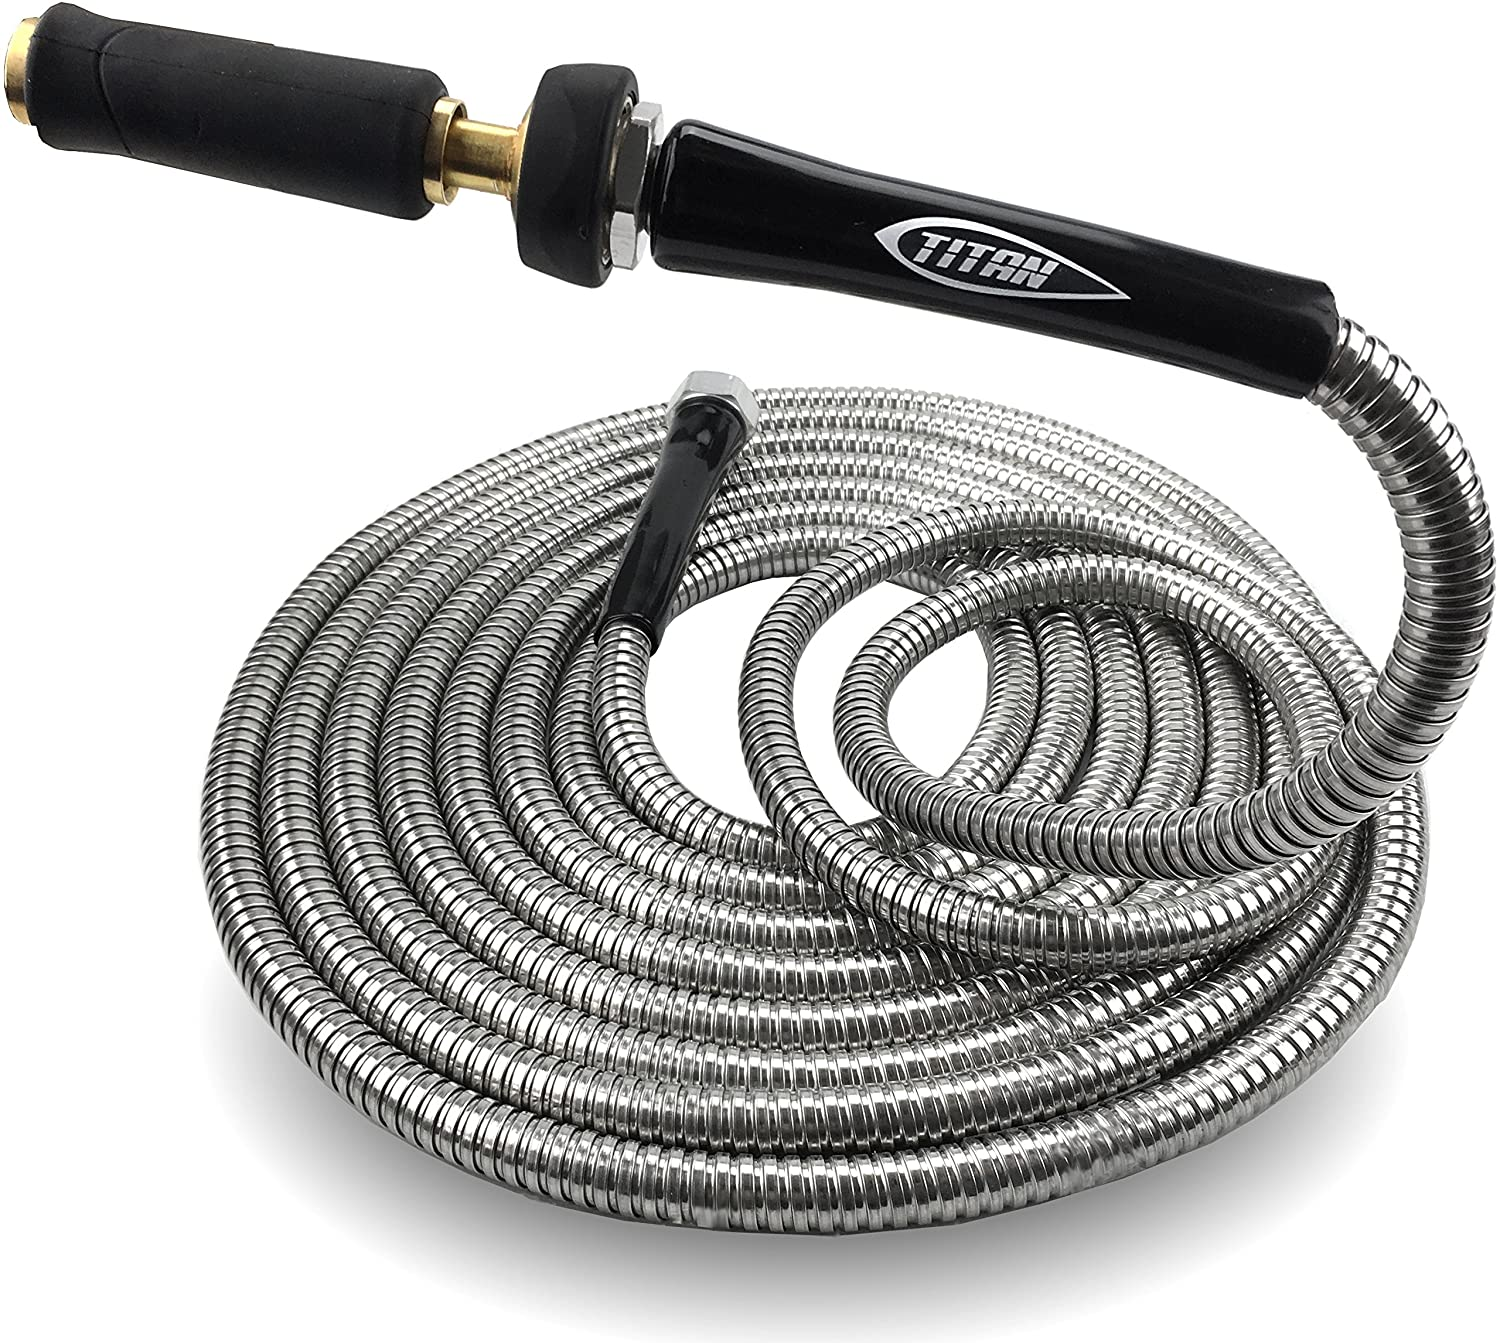 Best Garden Hoses You Can Buy Today